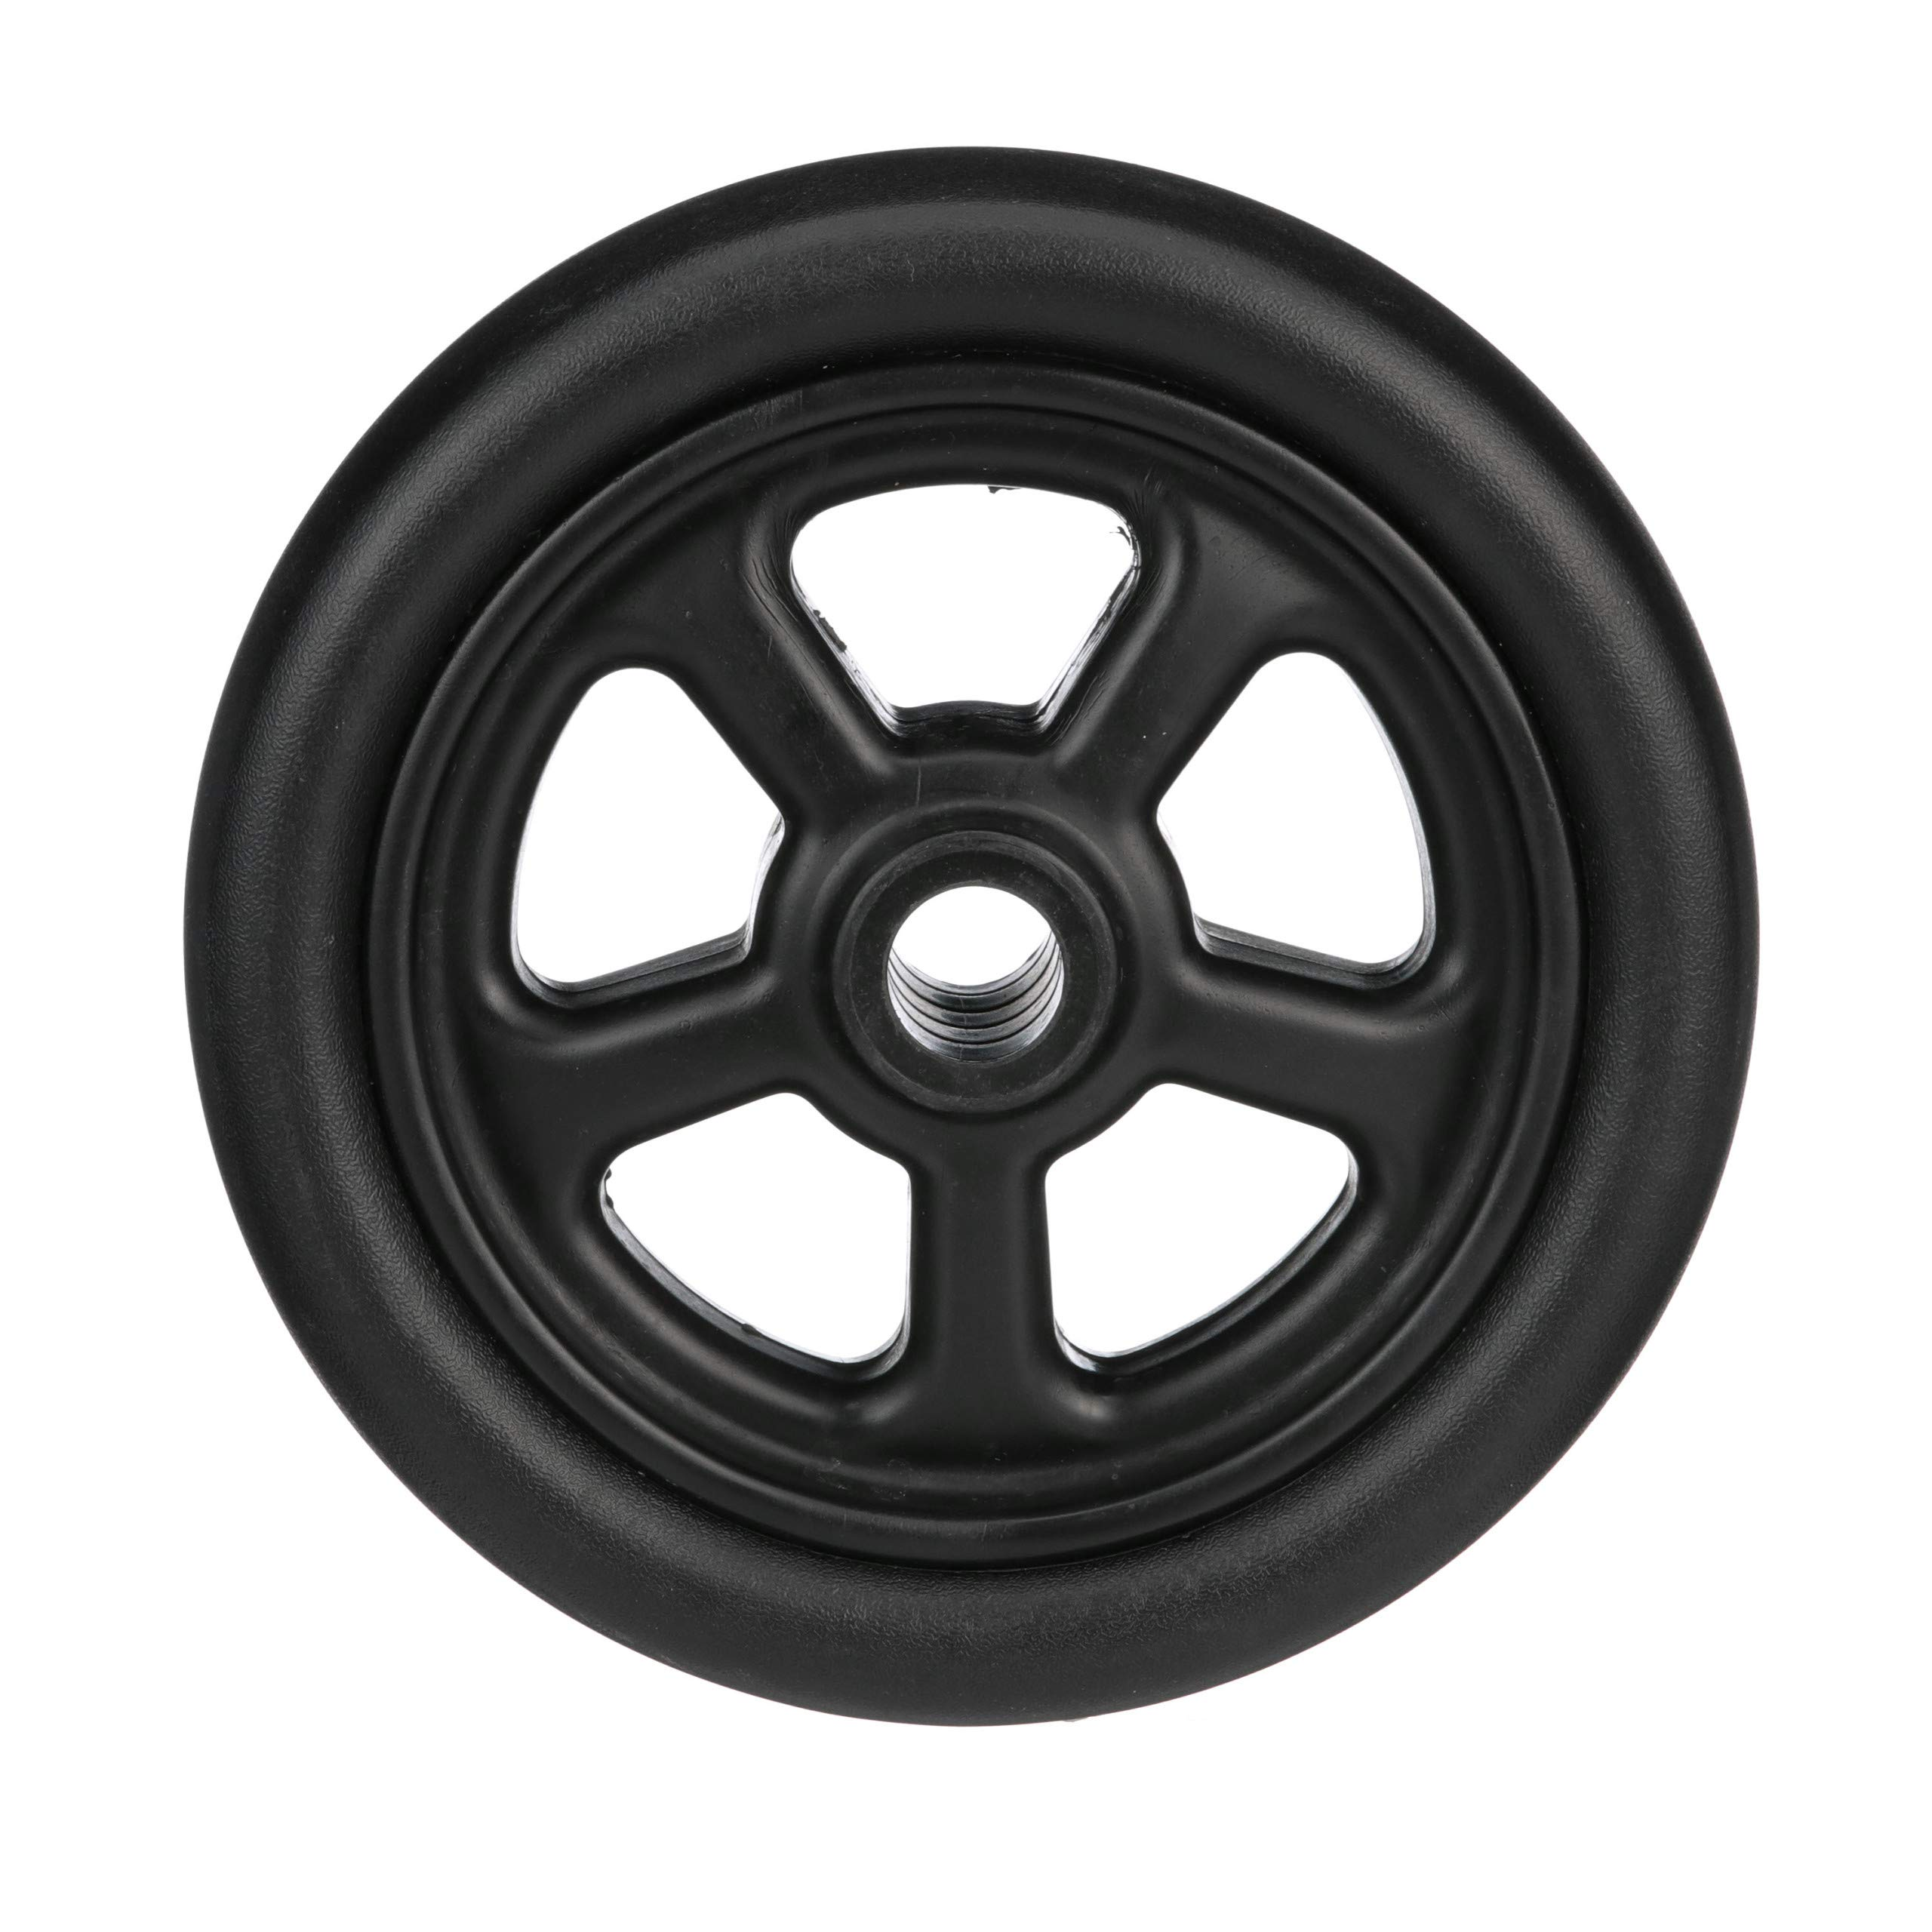 SEACHOICE 52070 Replacement Wheel for Fold Up Trailer Jack 6'' by SEACHOICE